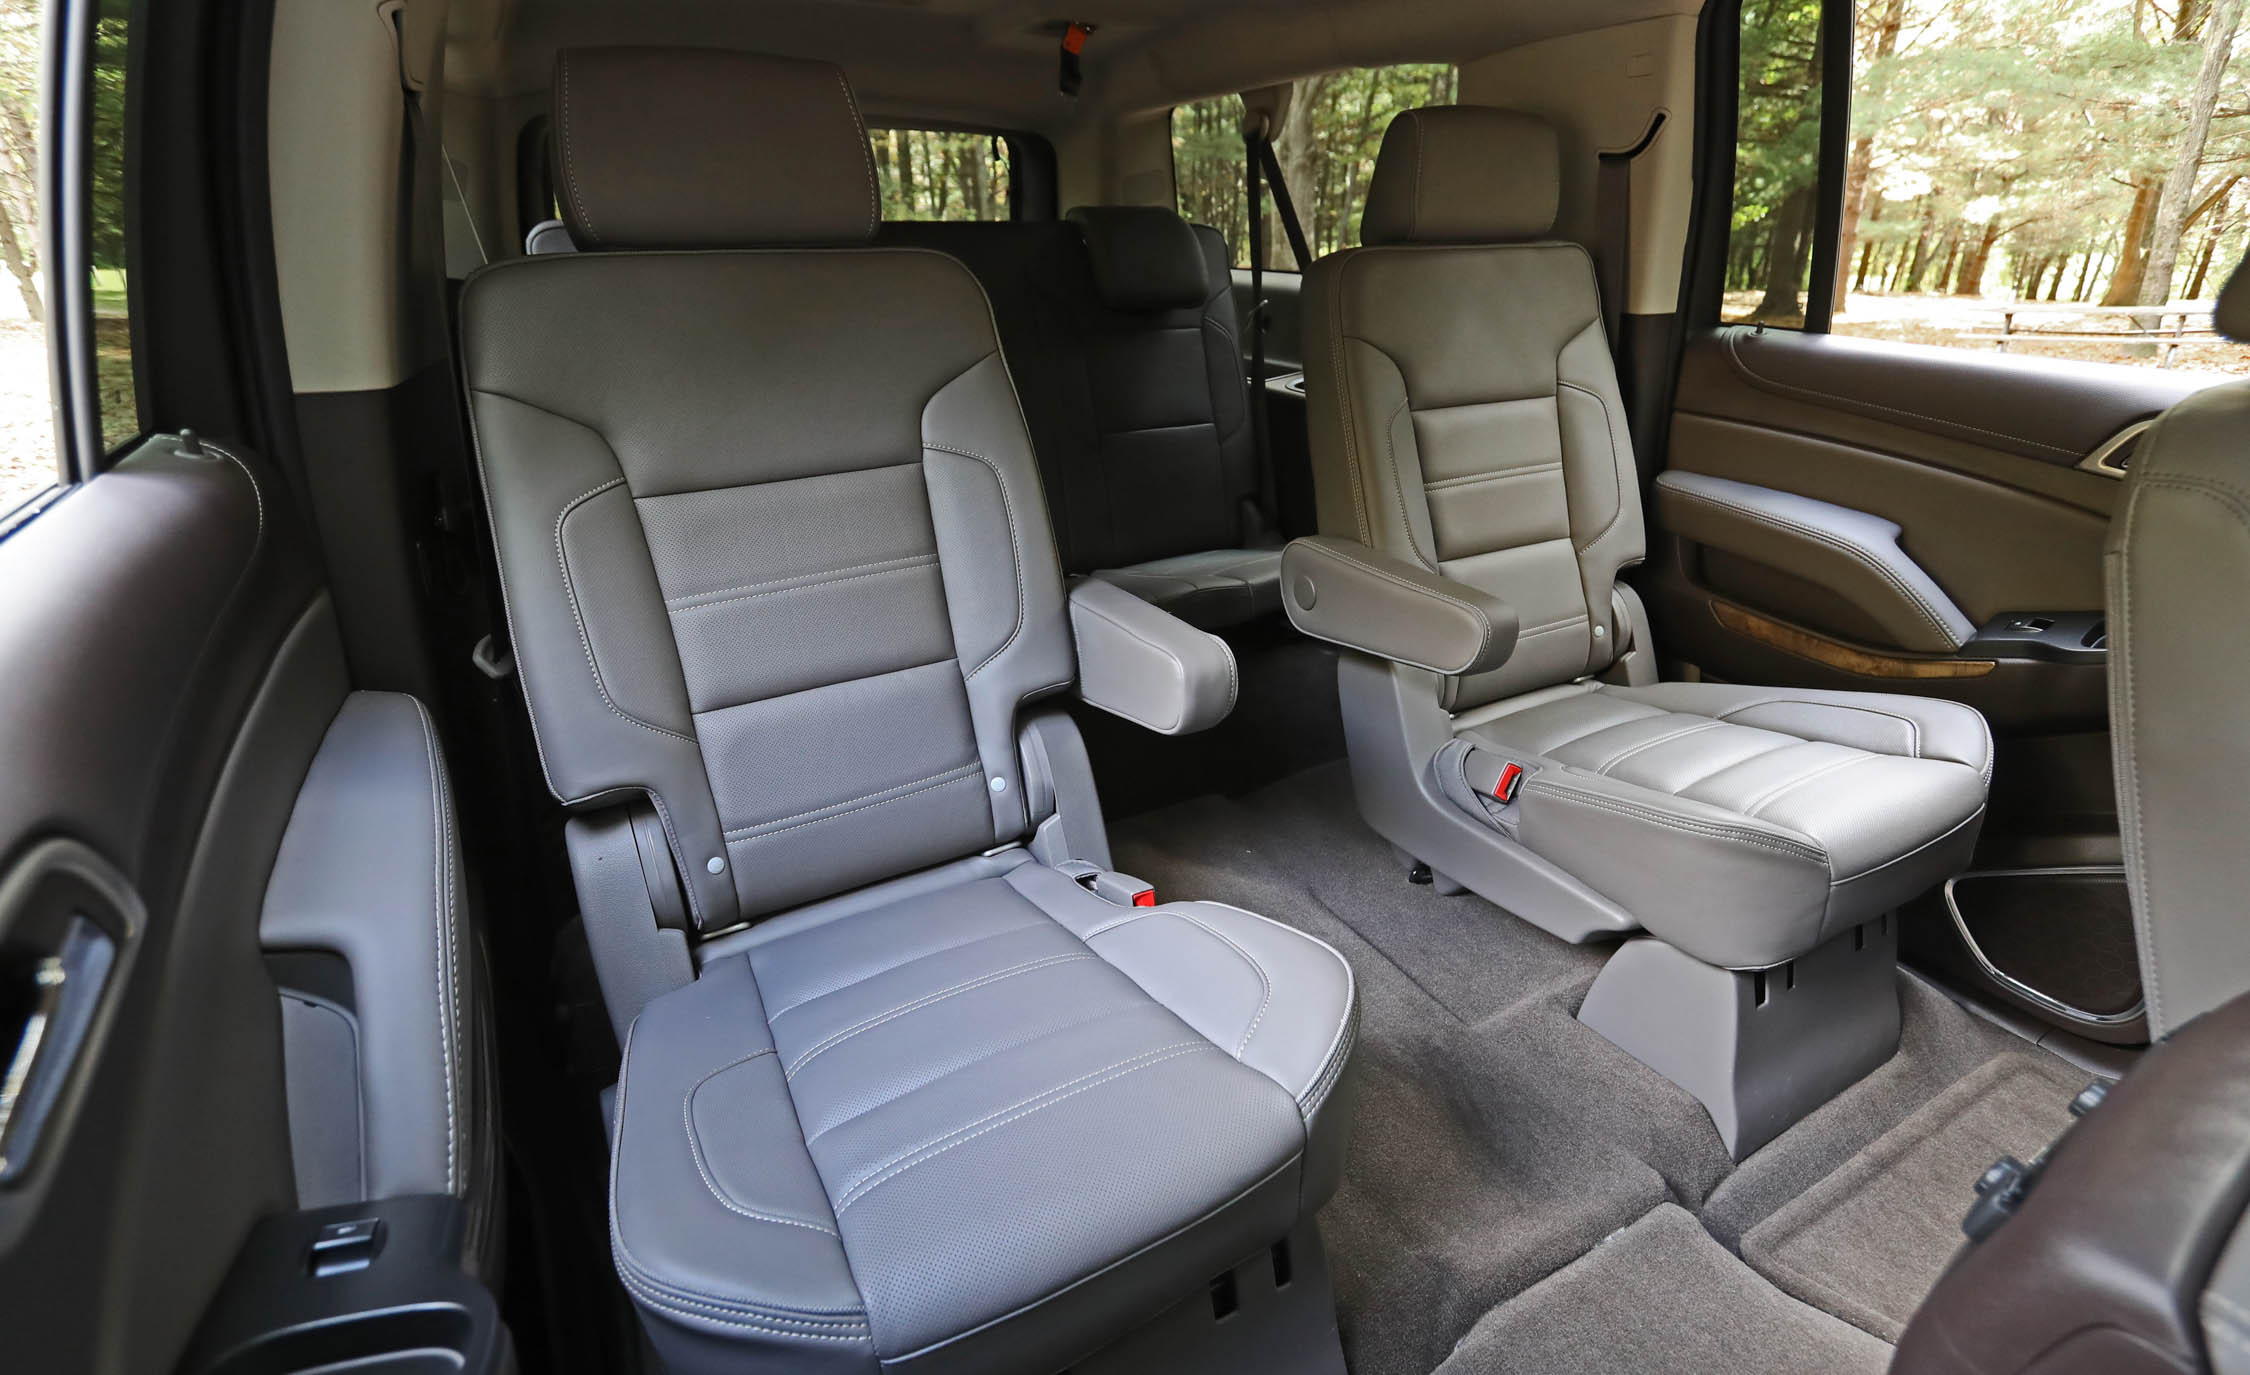 2017 Gmc Yukon Xl Denali Interior Seats Rear Back 2nd Row (Photo 20 of 26)